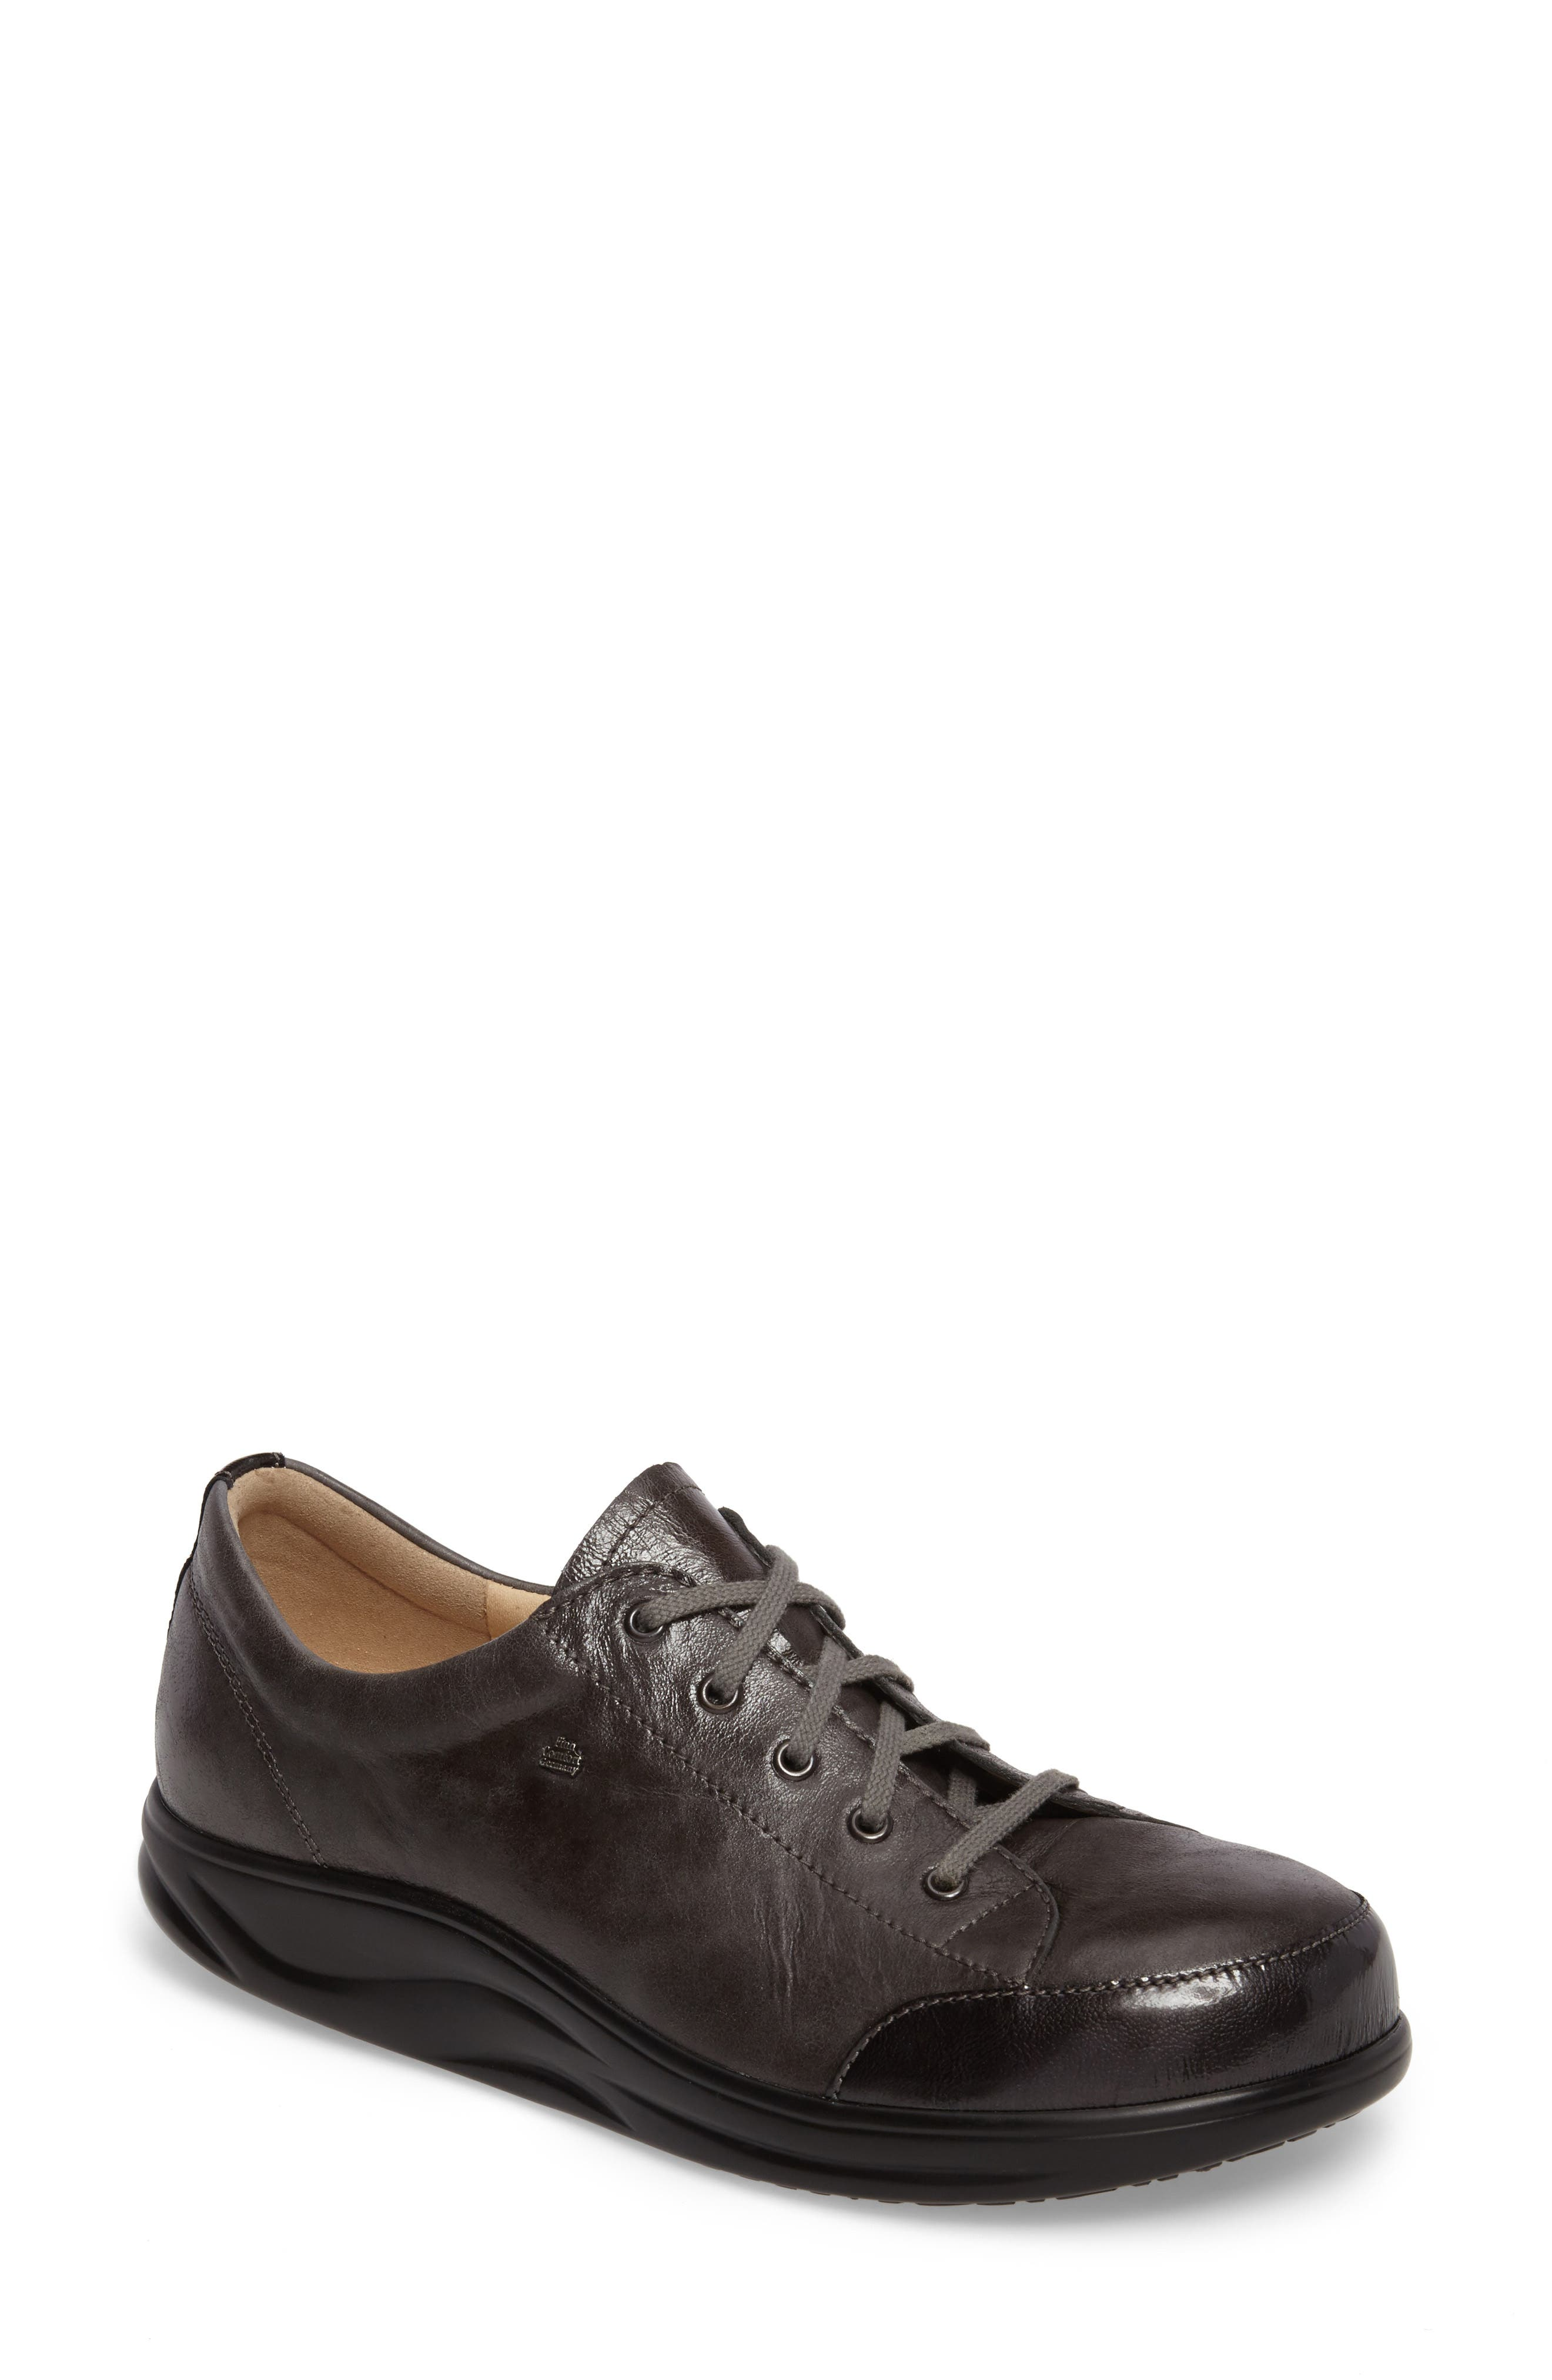 Altea Sneaker,                         Main,                         color, GREY LEATHER